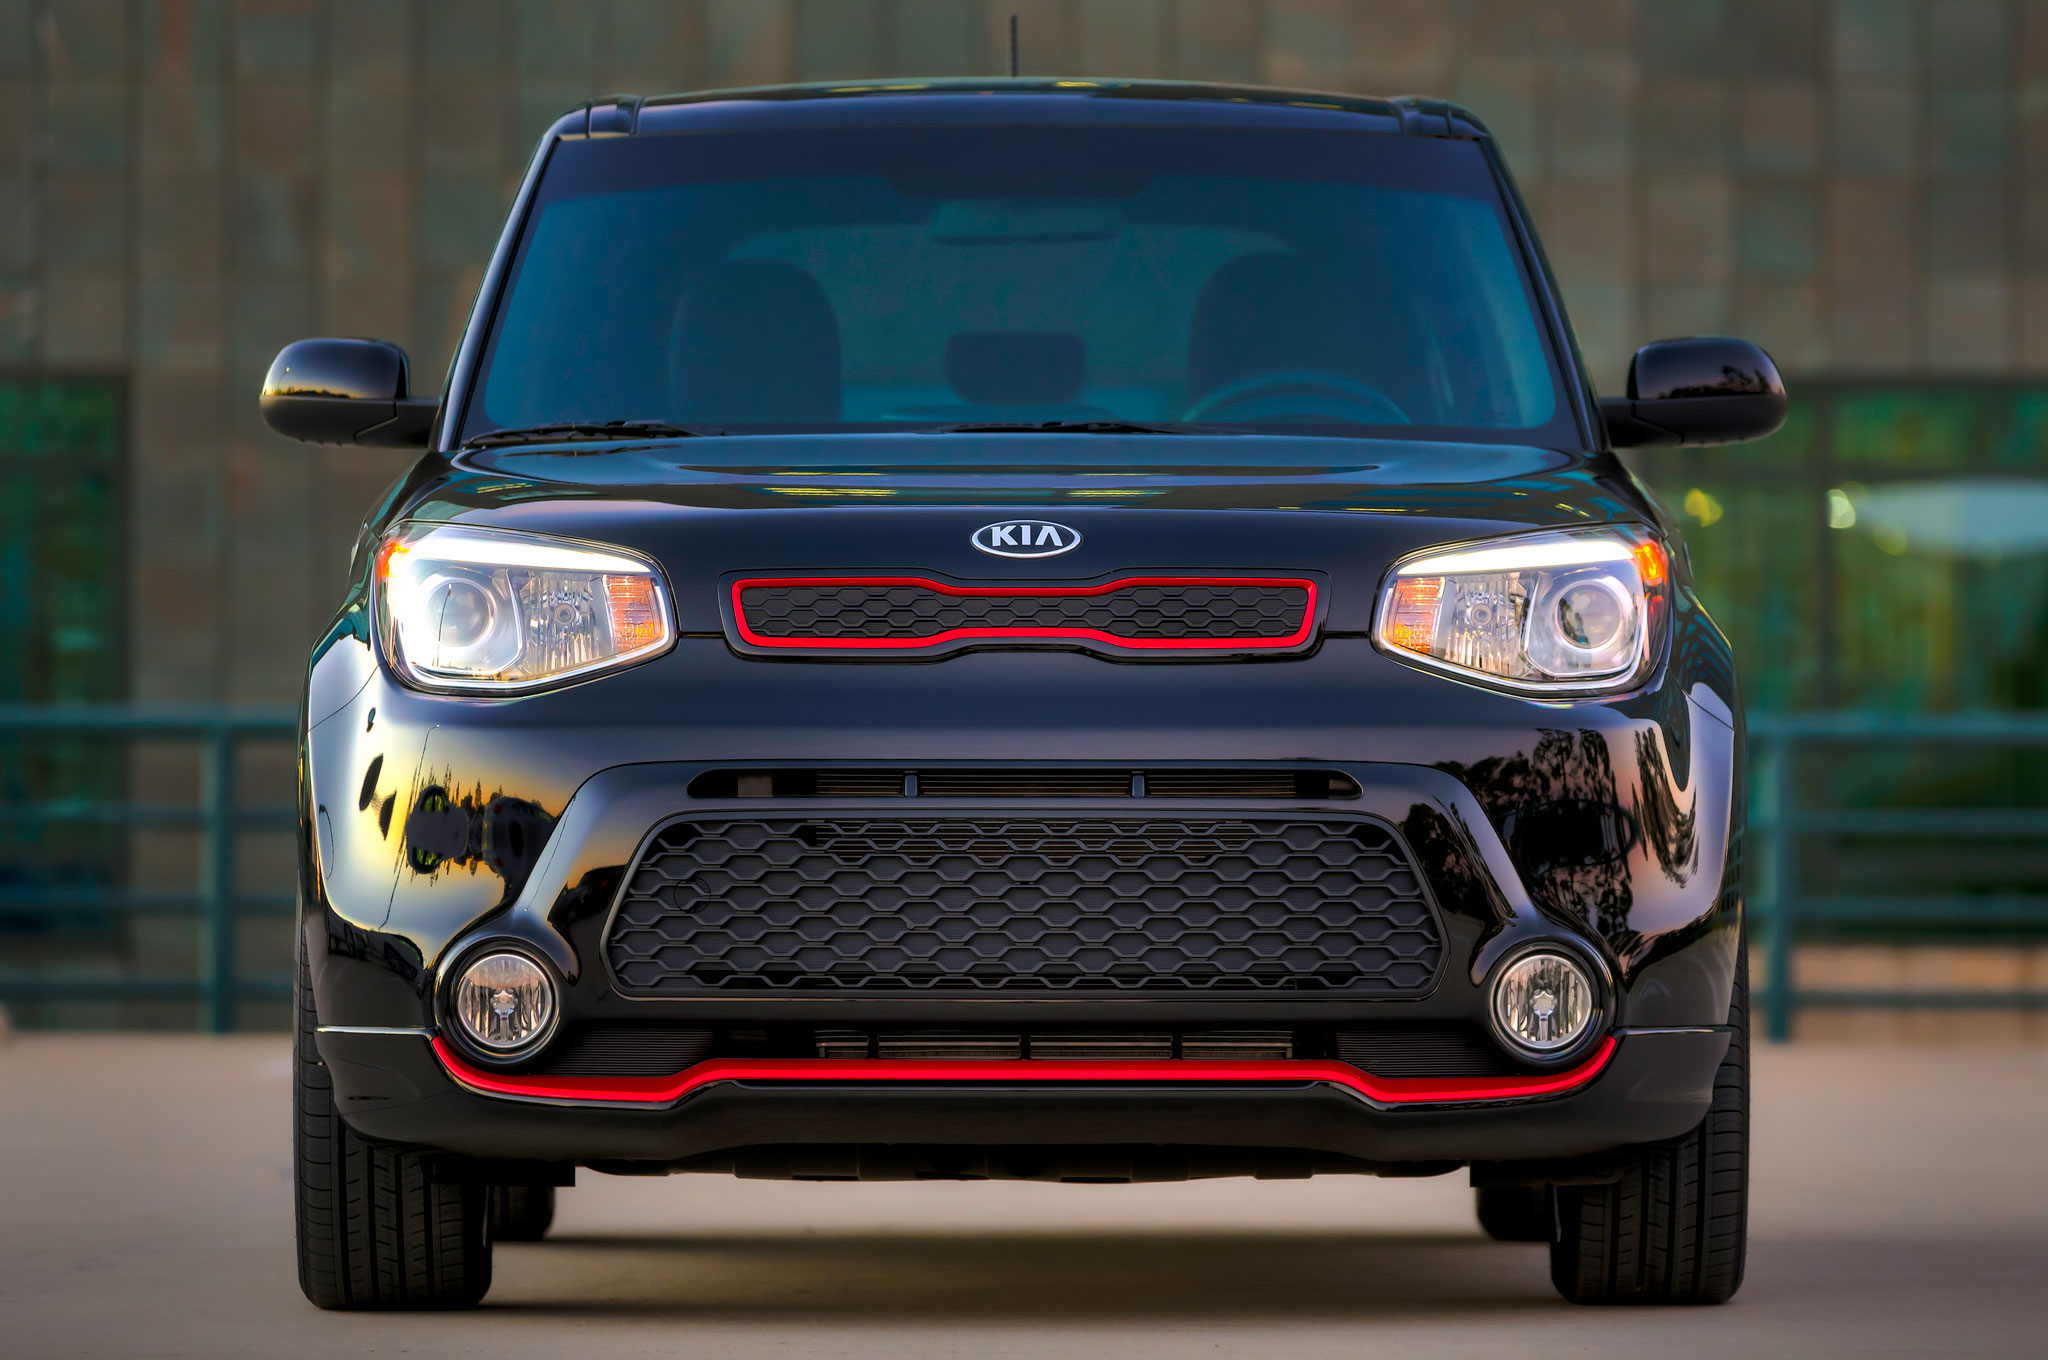 news hamster and track reviews intel the trackster to kia sstp ster scare soul designed souls photos